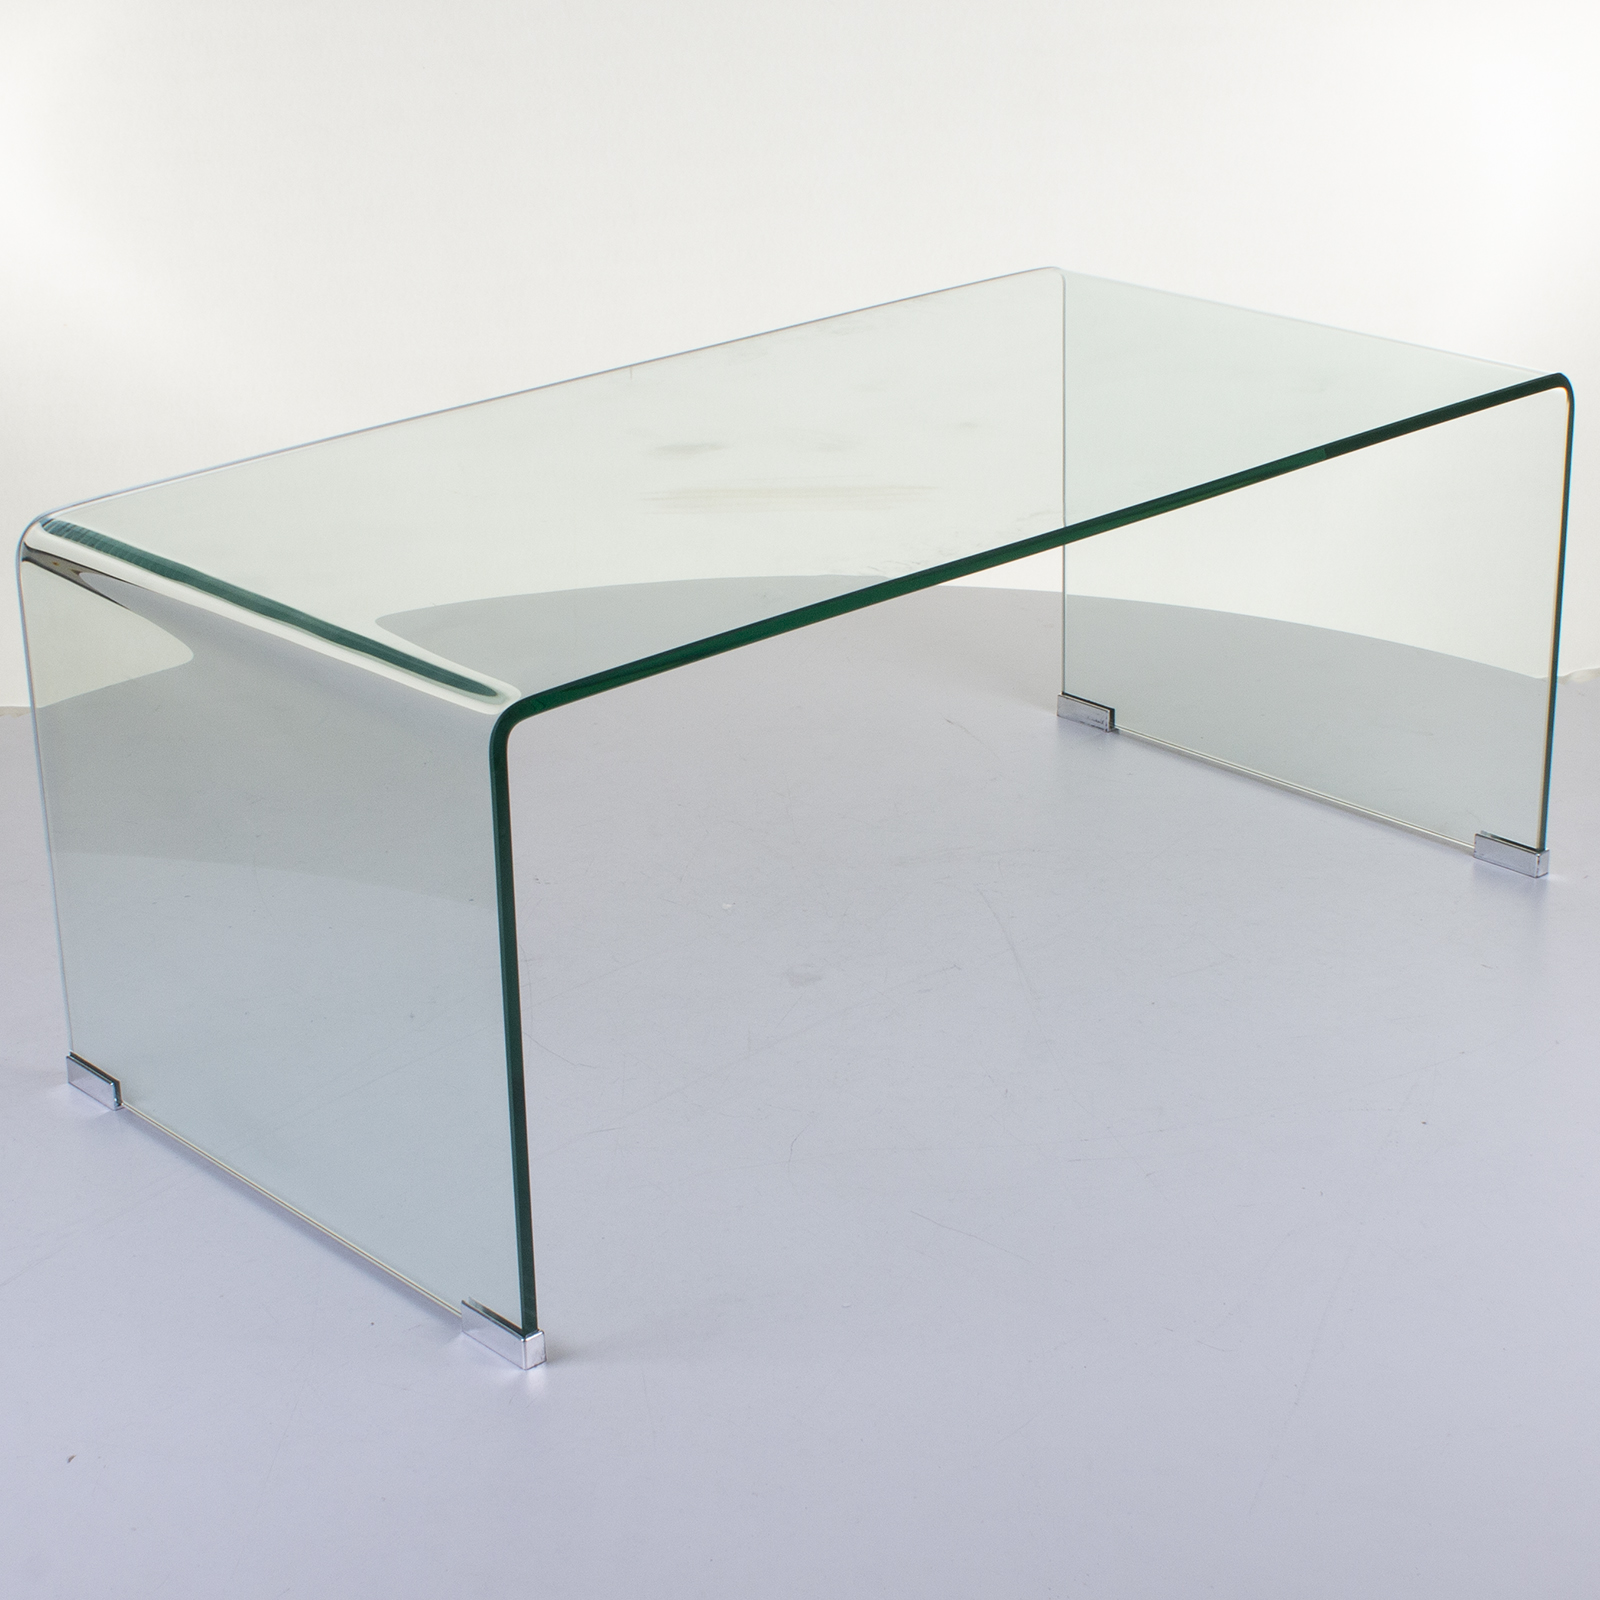 Large Curved Glass Coffee Table Bent Transparent Tempered Dining